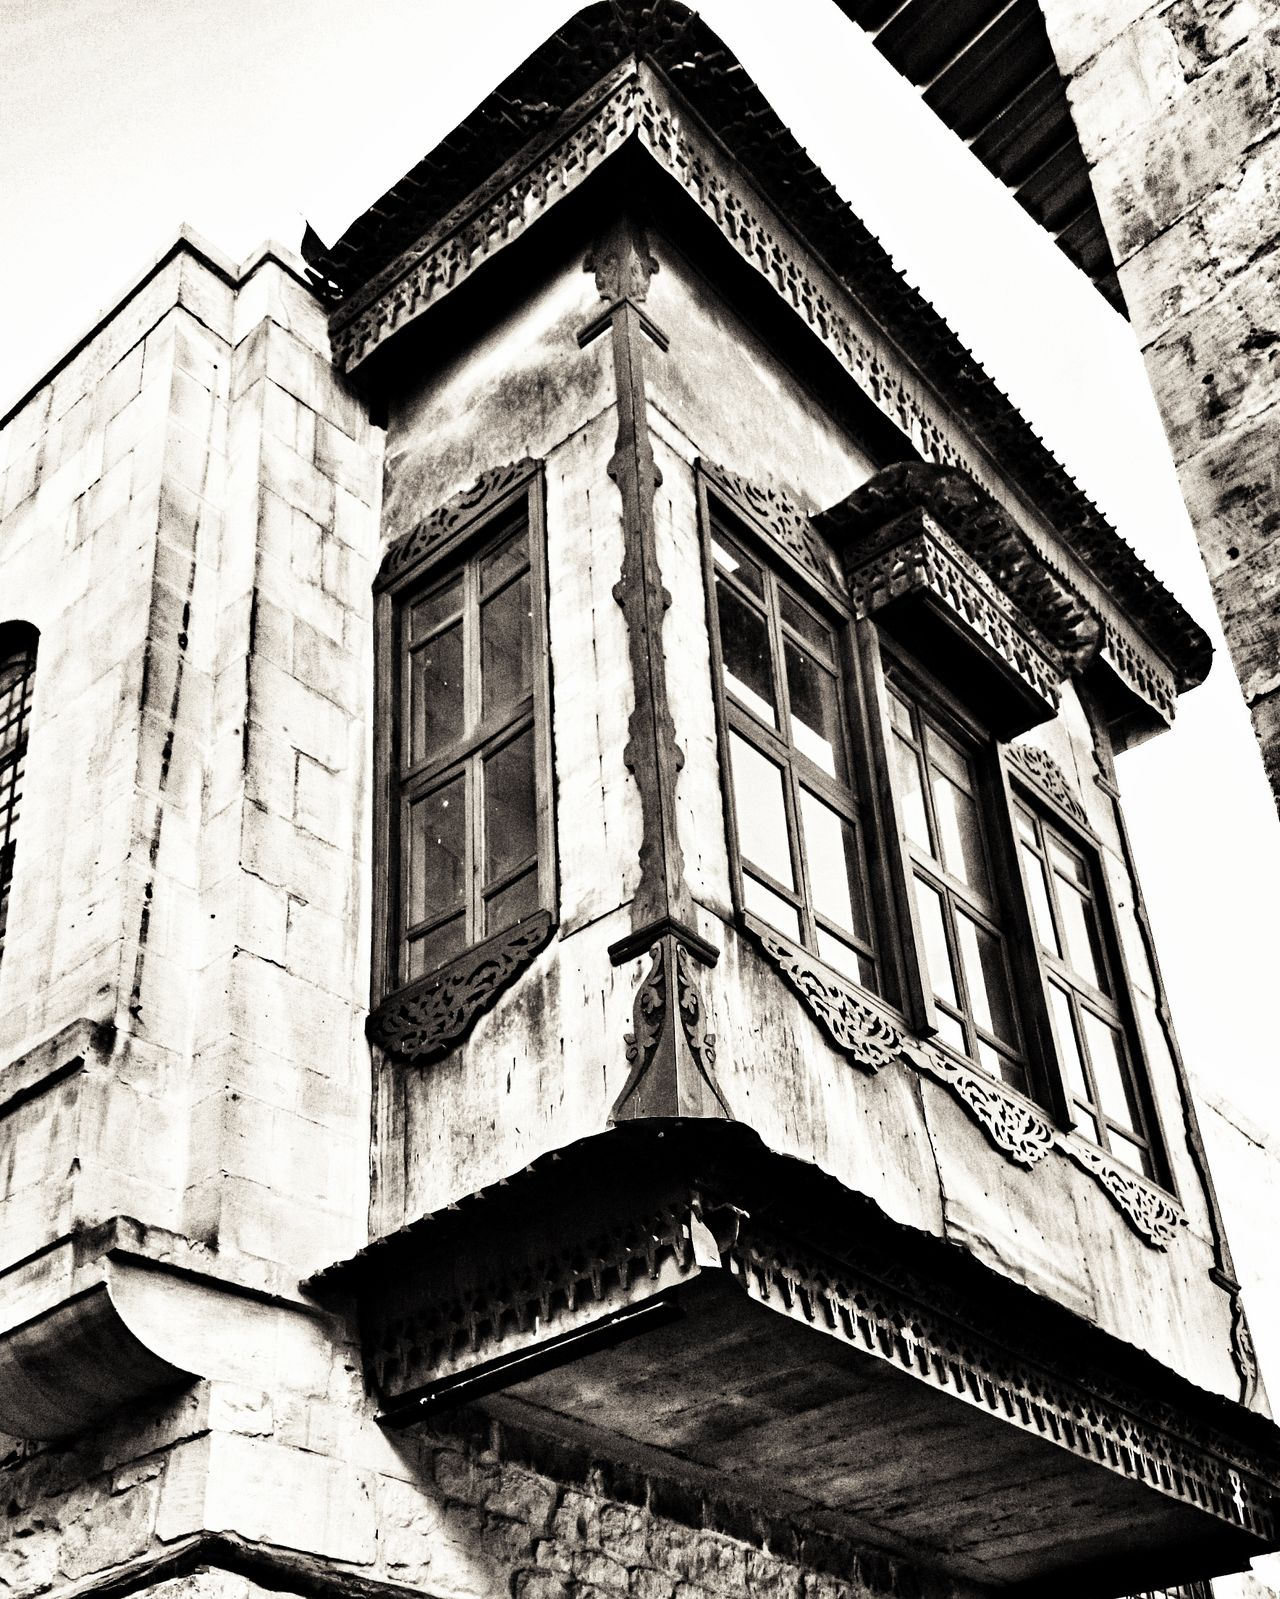 Architecture Building Exterior Built Structure Low Angle View No People Day Outdoors Sky Oldhouse Old Buildings Old House Kilis Turkey Hakandirik City Life